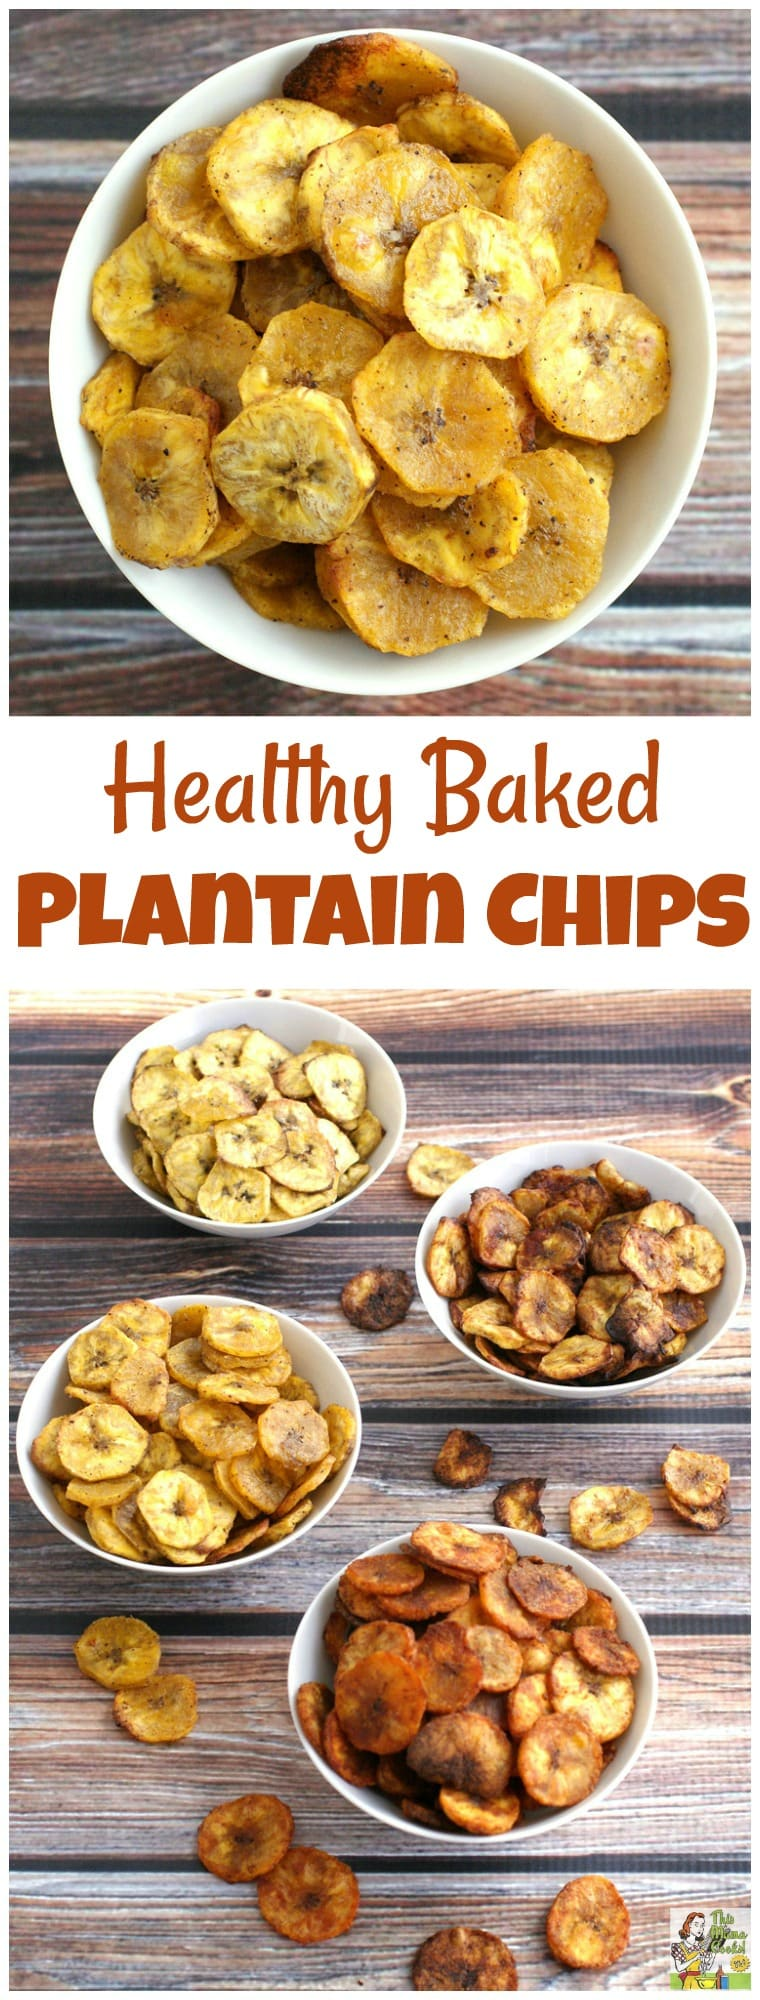 Looking for a healthy party snack? Try this Baked Plantain Chip recipe that you can season four different ways - sweet or savory. Not only is it a healthy snack recipe, it\'s gluten free! #chips #snacks #healthysnacks #healthy #bananas #partysnacks #plantains #baked #snackrecipe #recipe #easy #recipeoftheday #healthyrecipes #glutenfree #easyrecipes #snack